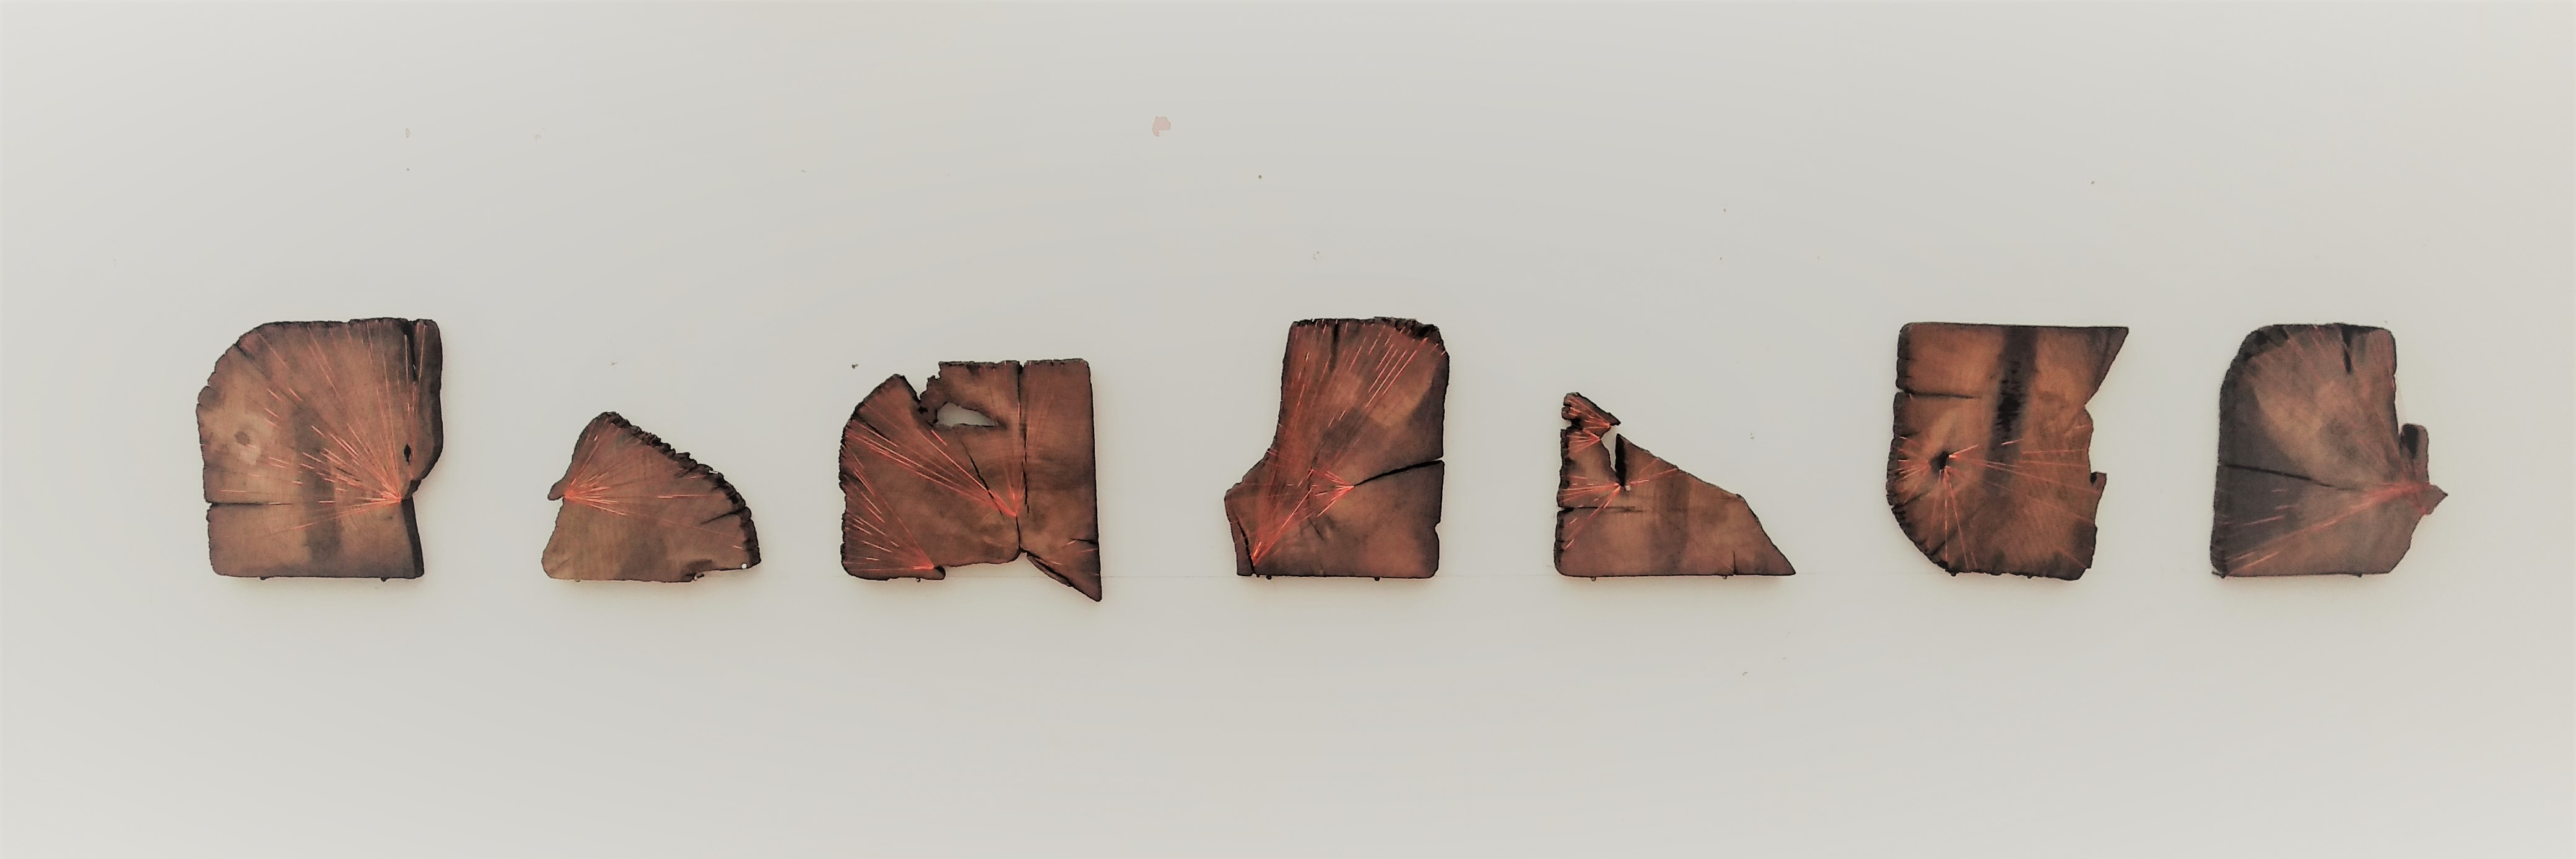 """Acts of Preservation"". Railway sleeper fragments bound in copper thread"